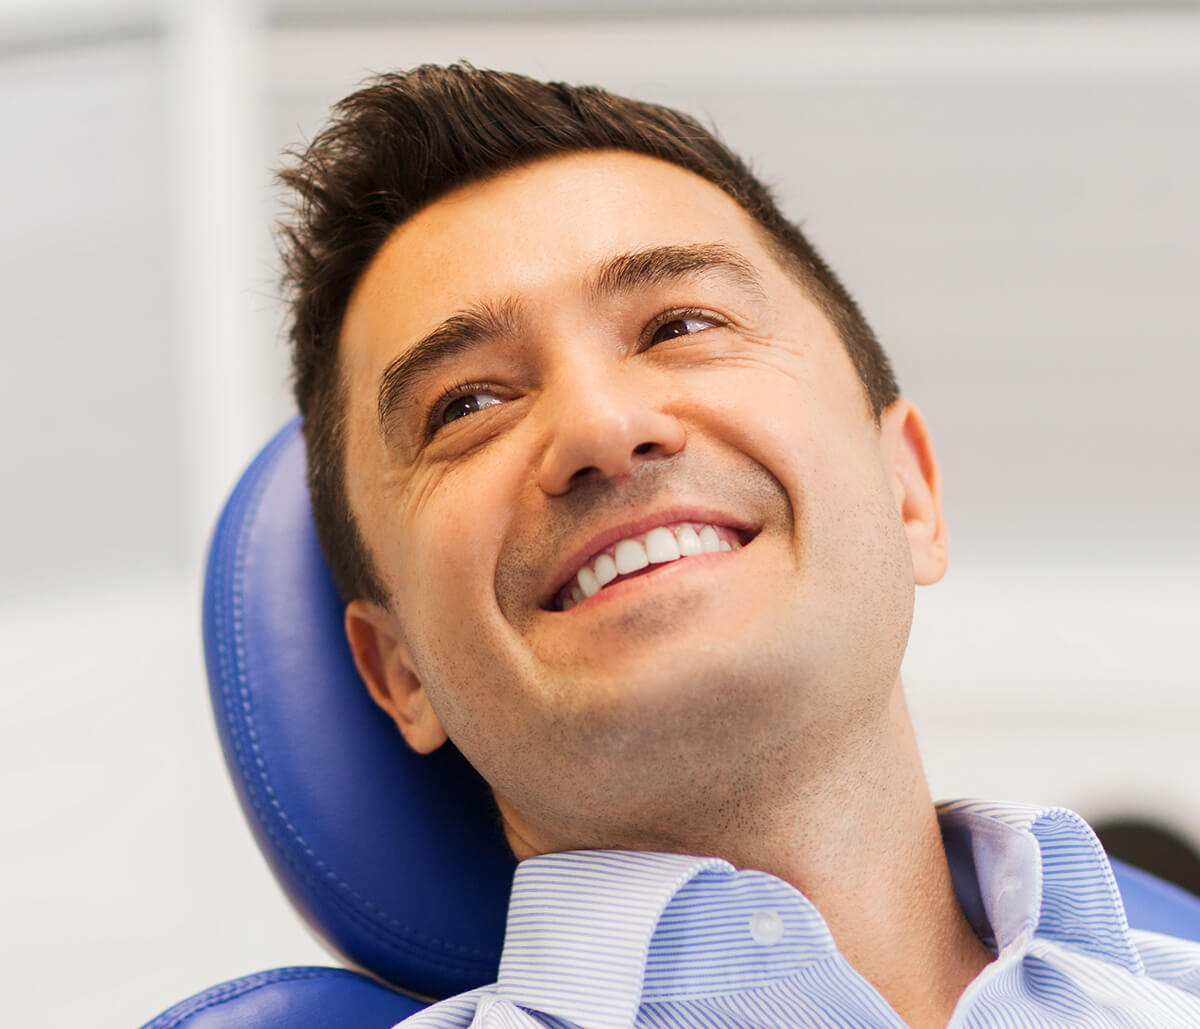 How to Look for a Dental Implants Procedure in Houston TX Area